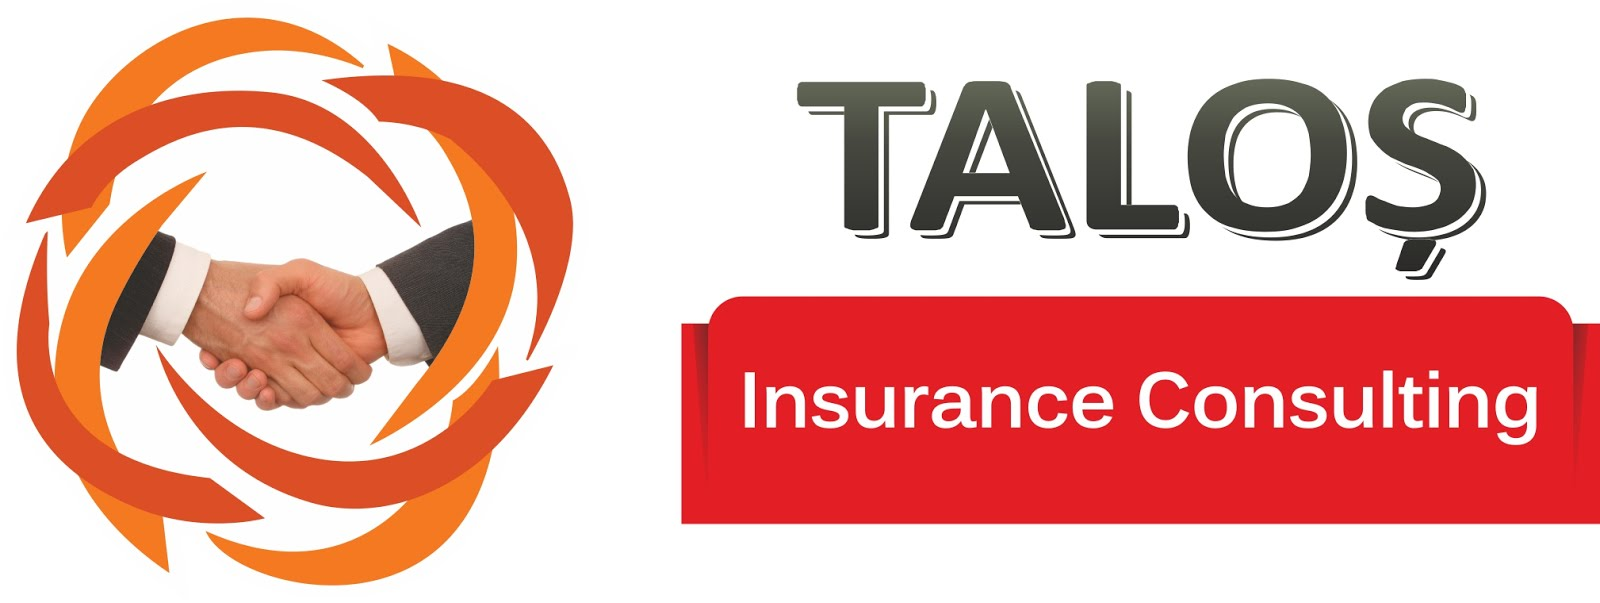 TALOS Insurance Consulting